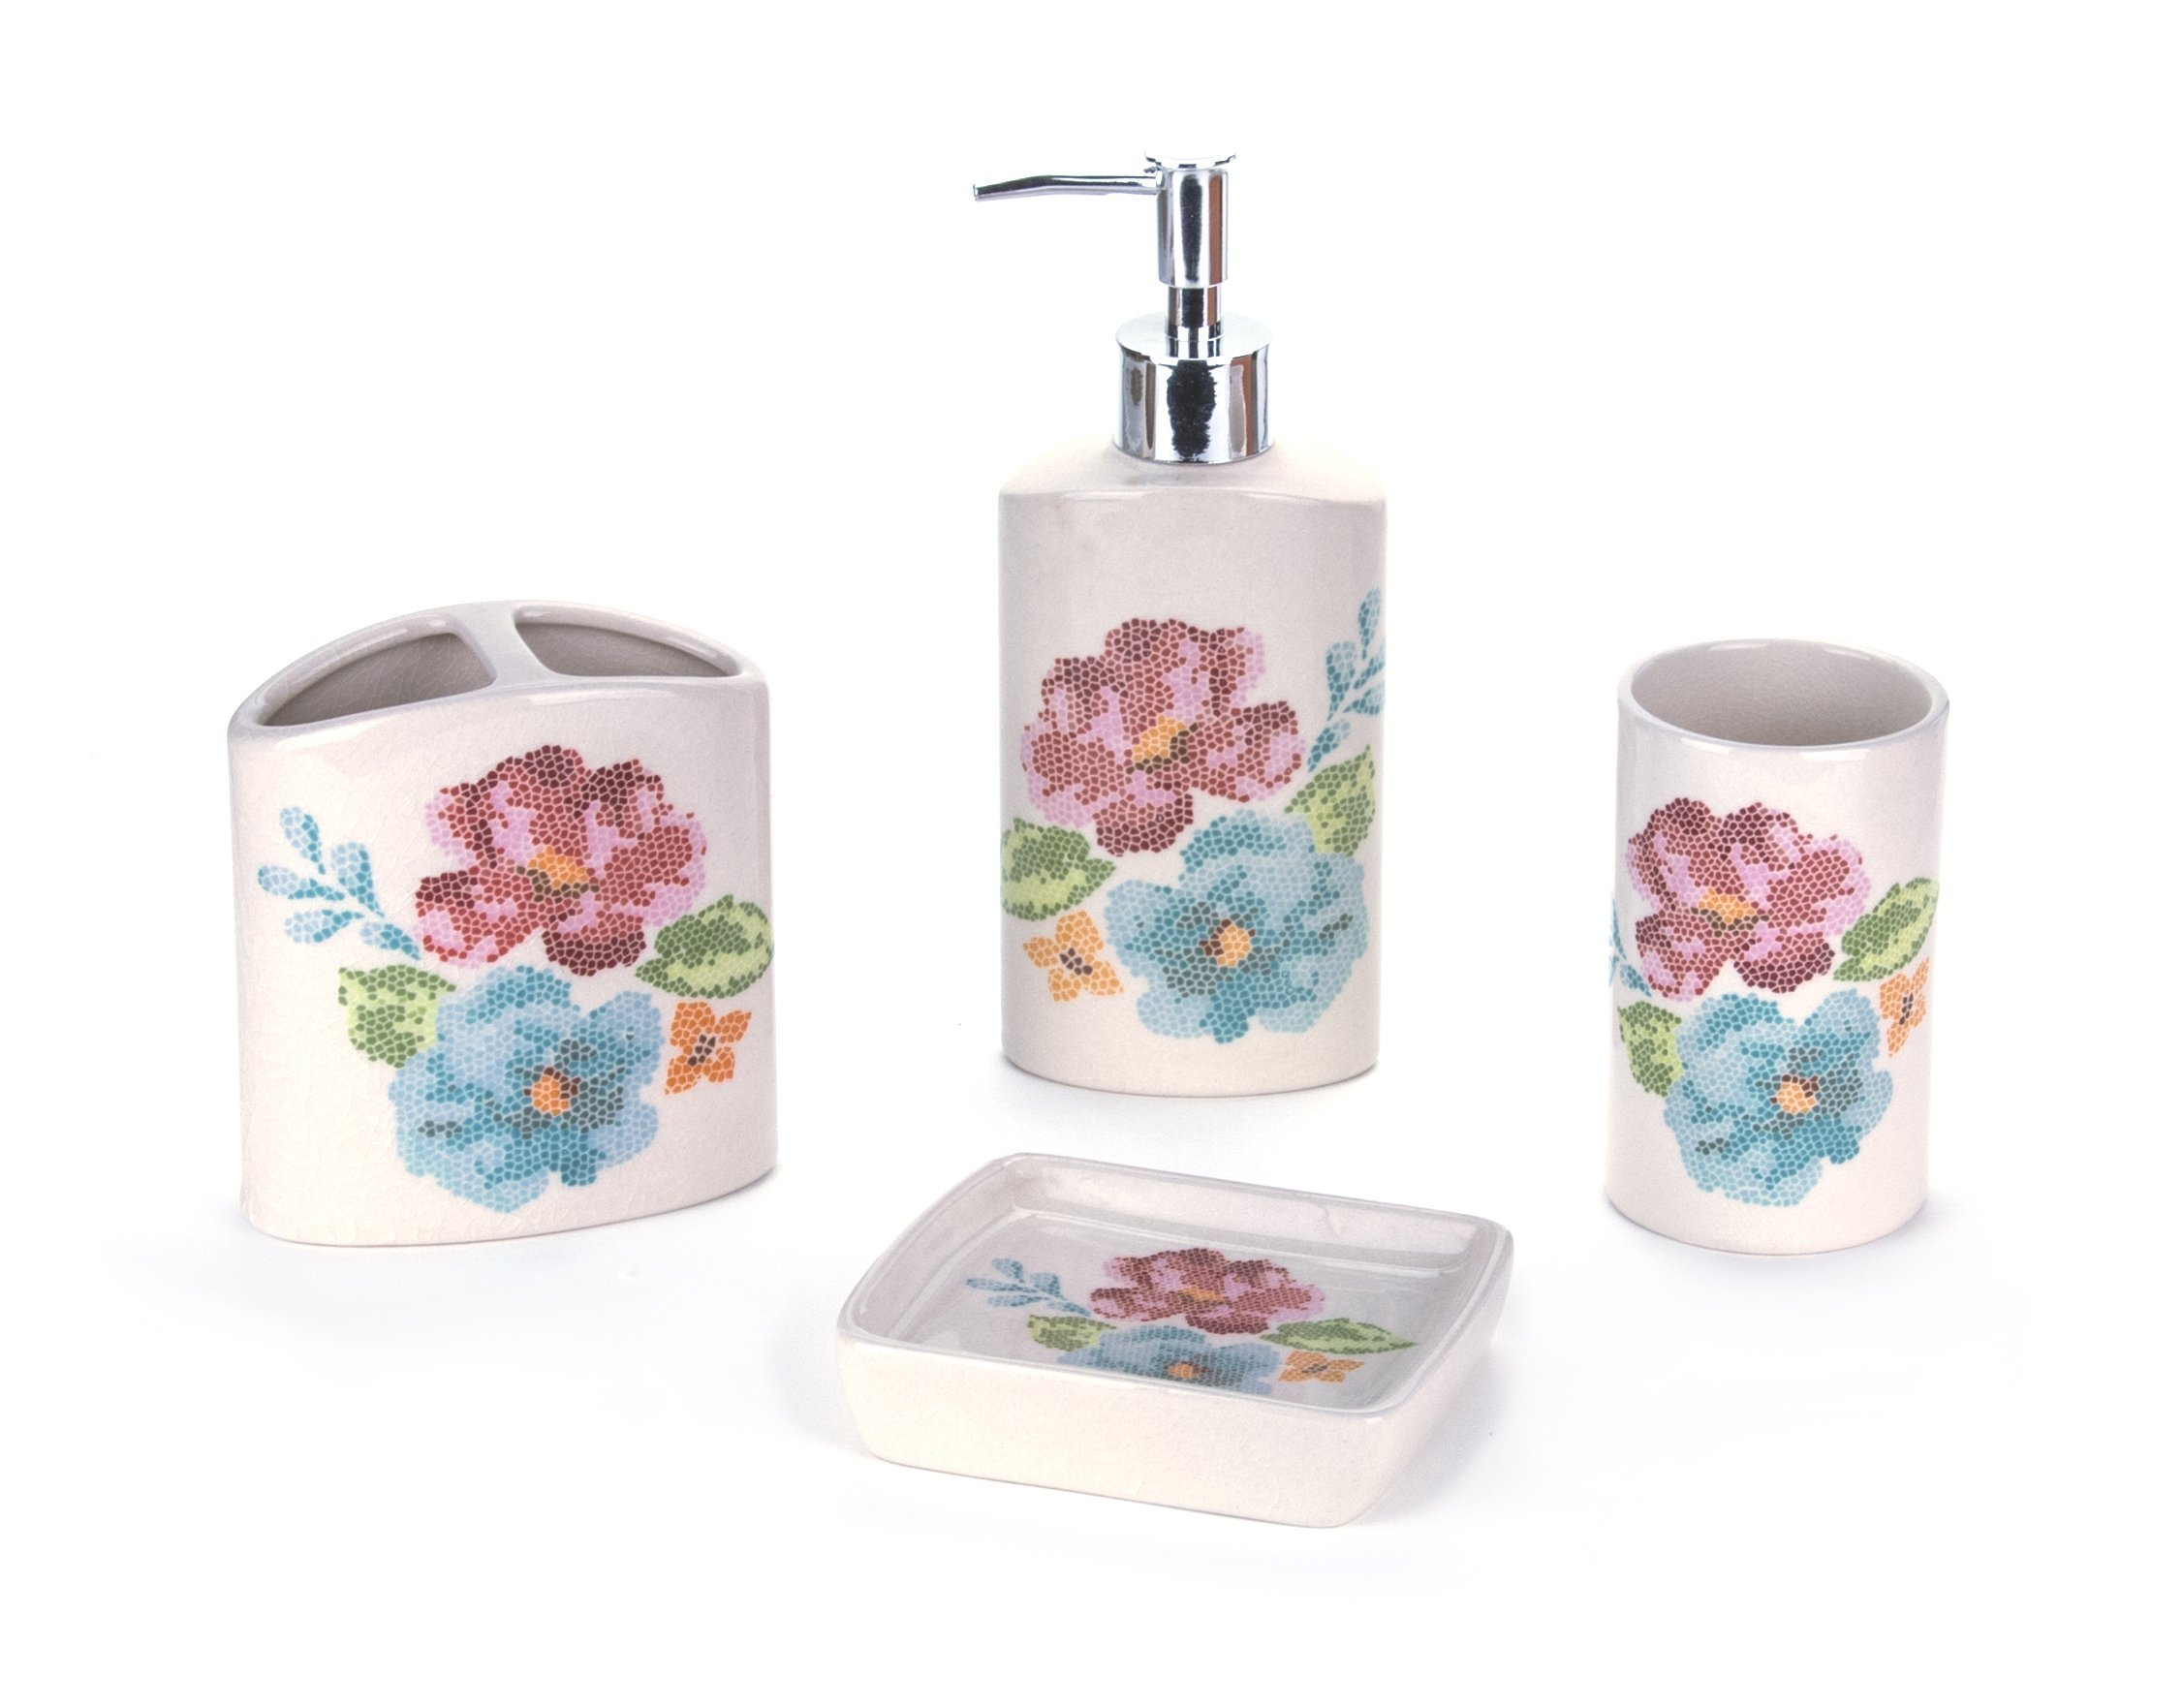 Elegant 4 Piece Bathroom Accessory Set - Toothbrush Holder, Soap Dispenser, Tumbler, and Soap Dish - PERFECT ACCESSORY SET for Master bath, Guest bath or Kids bath. Also Suitable for Commercial use. 4 PIECE SET INCLUDES Tumbler, Soap Dish, Toothbrush/ Toothpaste Holder, and Soap Dispenser/ Lotion Dispenser. CONTEMPORARY, DELUXE CERAMIC Perfect For Storing Your Toiletries and Adding Style to Your Bathroom Counter. - bathroom-accessory-sets, bathroom-accessories, bathroom - 81L3CO2coBL -